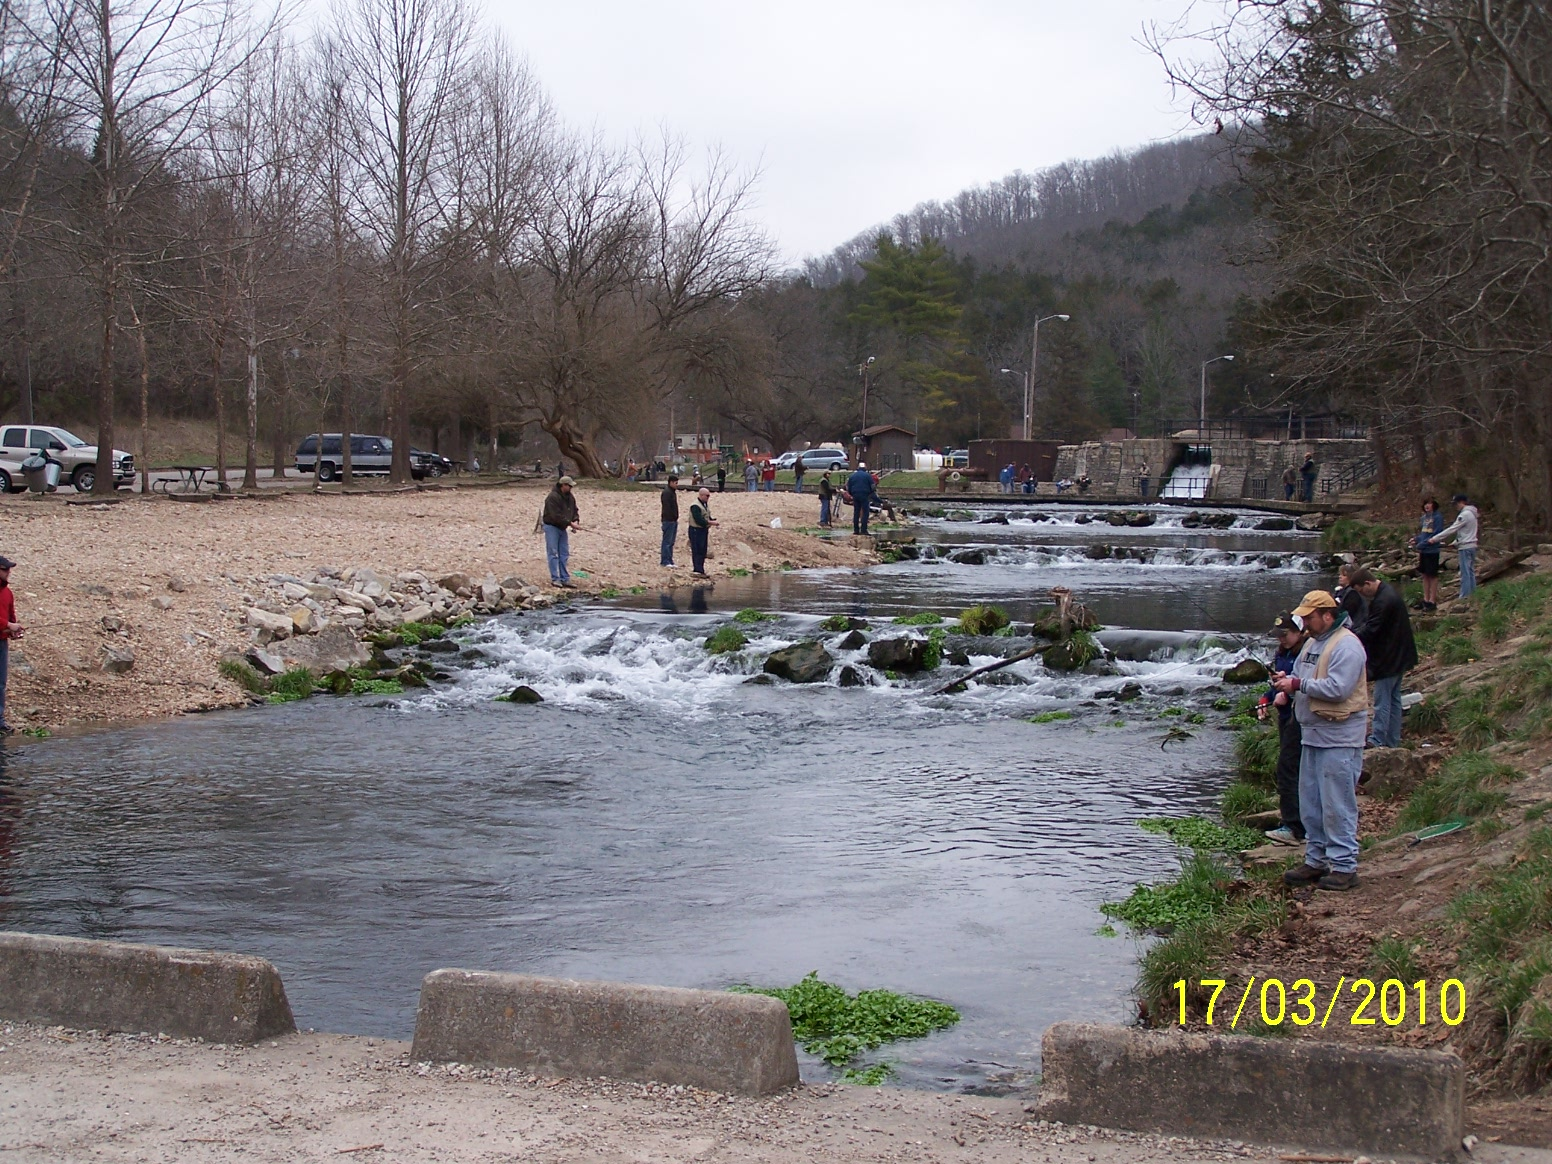 Intuitive value fly fishing roaring river cassville mo for Trout fishing in missouri